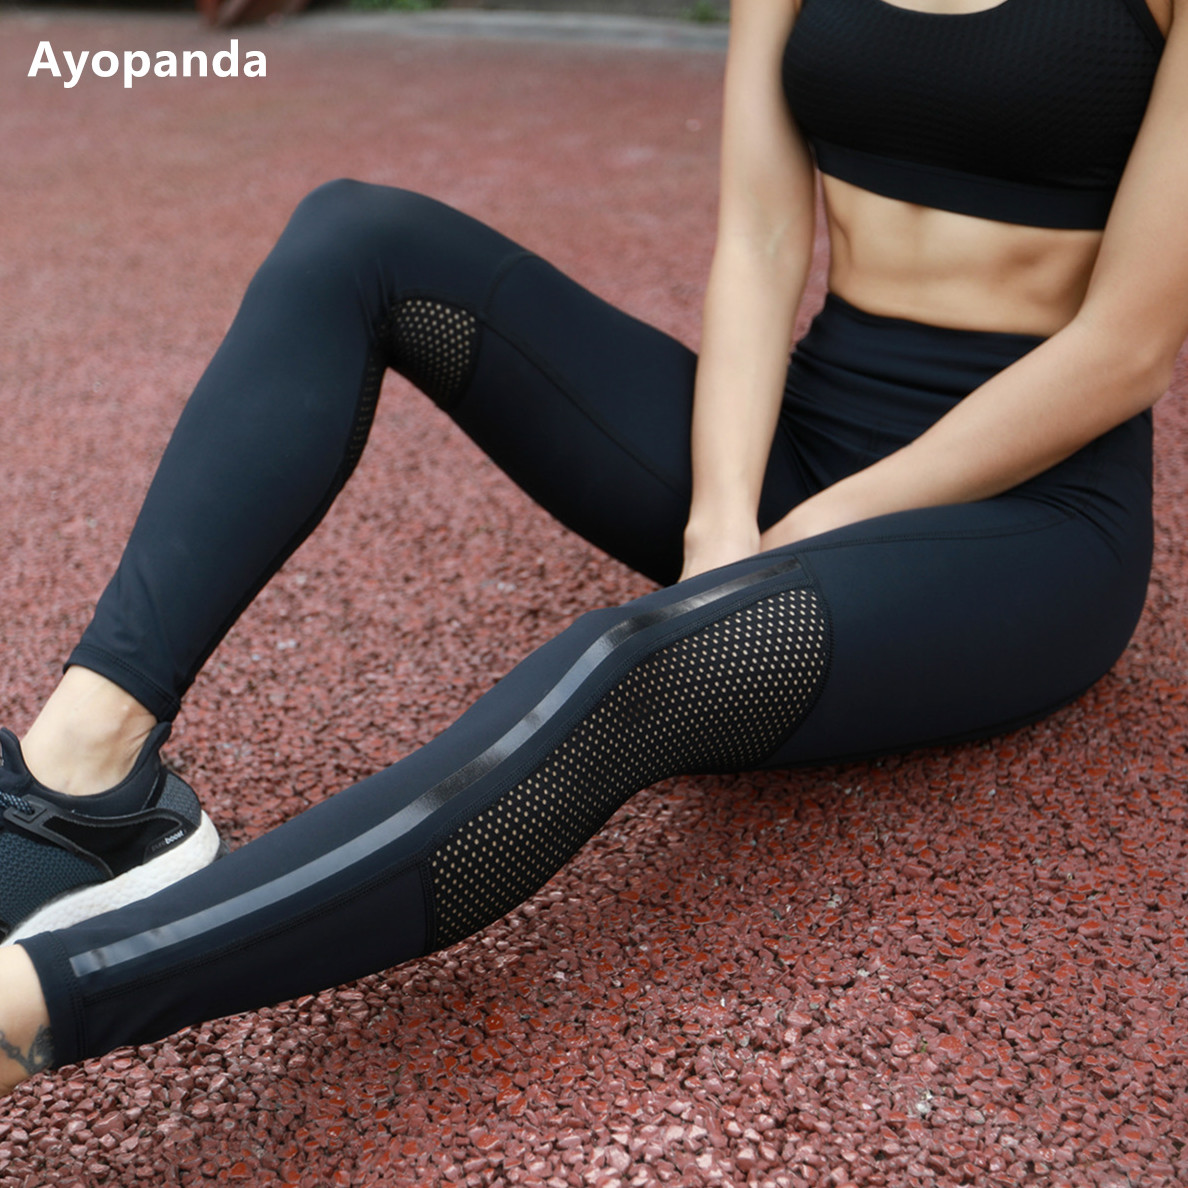 Ayopanda 2017 Hot Sale Women Net Hole Yoga pants High Waist Sports Legging Shiny Strap Jogging Tights Fitness Workout Trousers 2017 women s yoga pants workout capri leggings running tights side pockets functional pattern patchwork sports leggings jnc2315